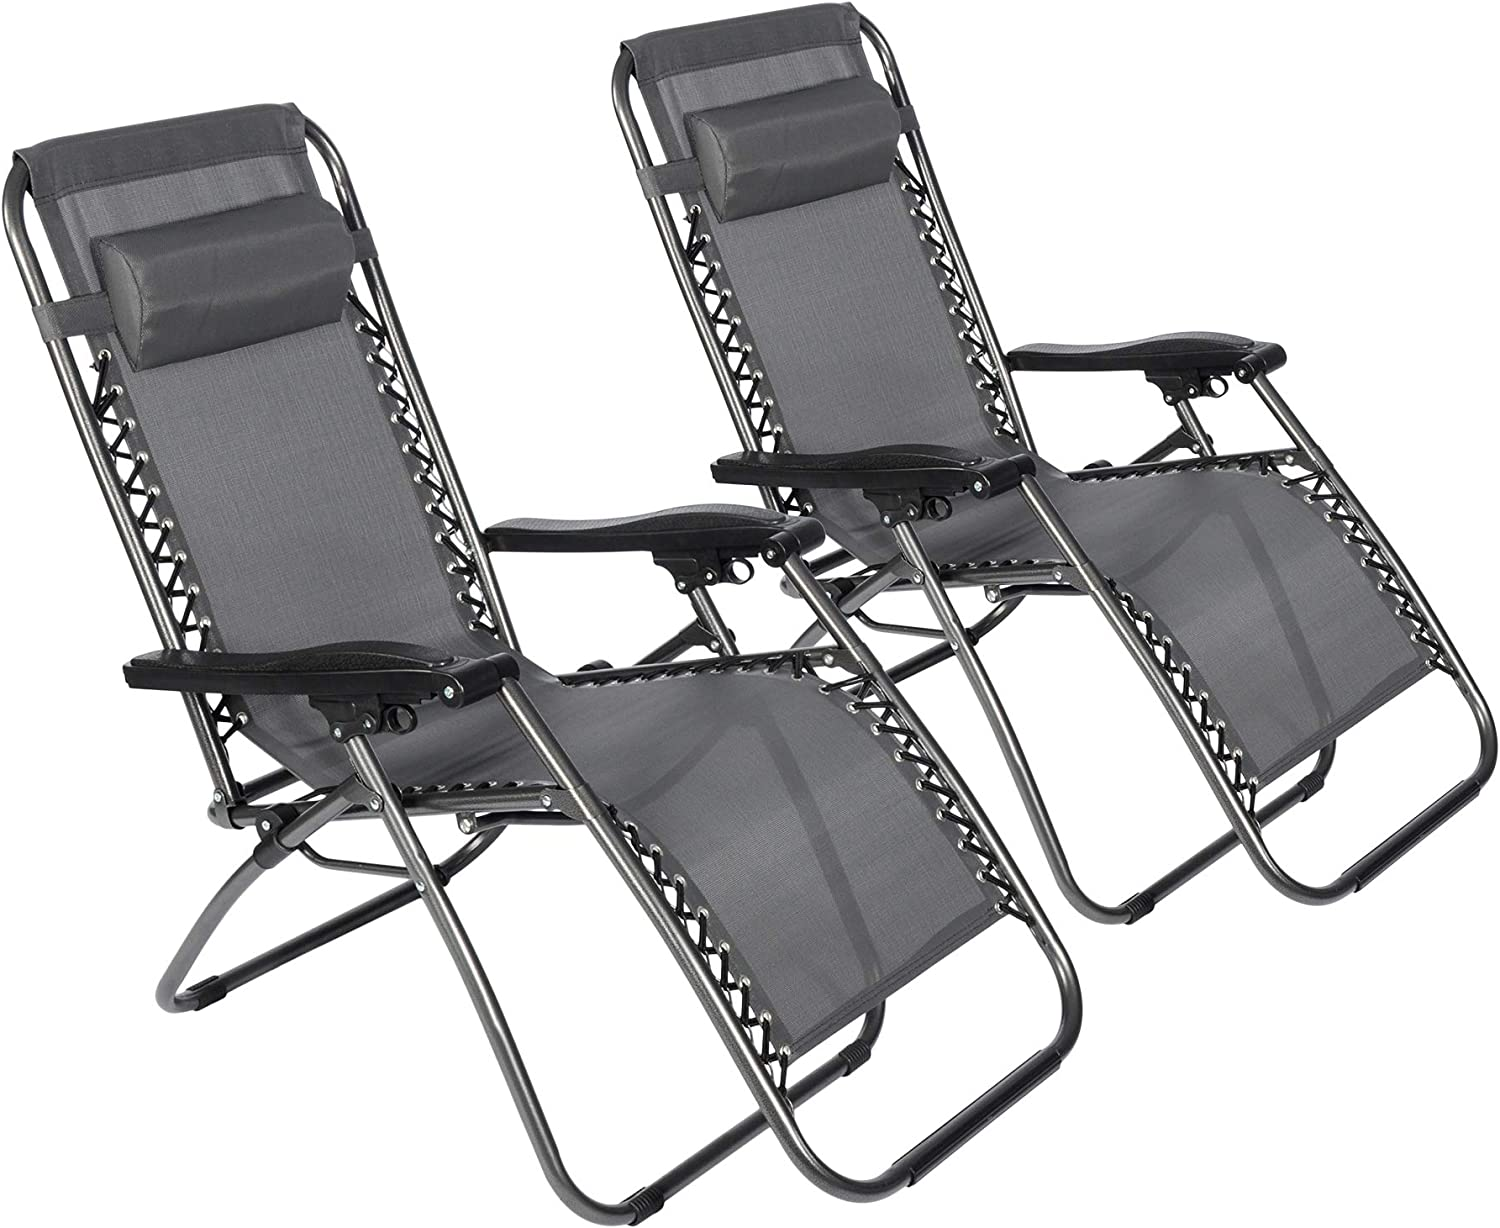 Popular standard LUCKYERMORE Zero Special price Gravity Chair 2-Pack Chairs Outdoor Lawn Patio